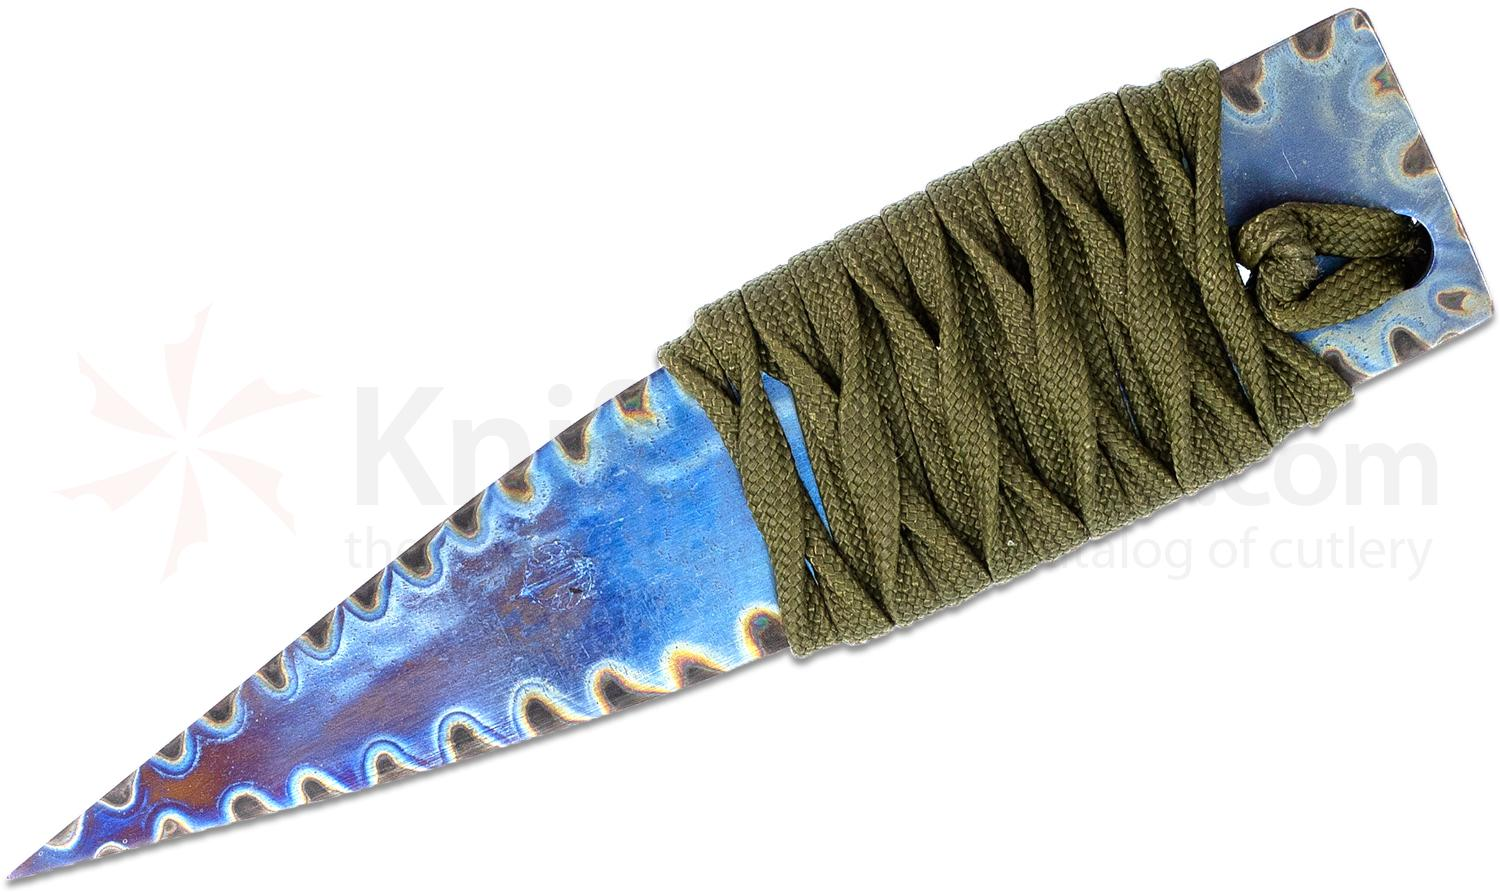 Strider Knives LM Nail Fixed Flamed Titanium Blade, 4.5 inch Overall, Green Cord Wrapped Handle, Kydex Sheath